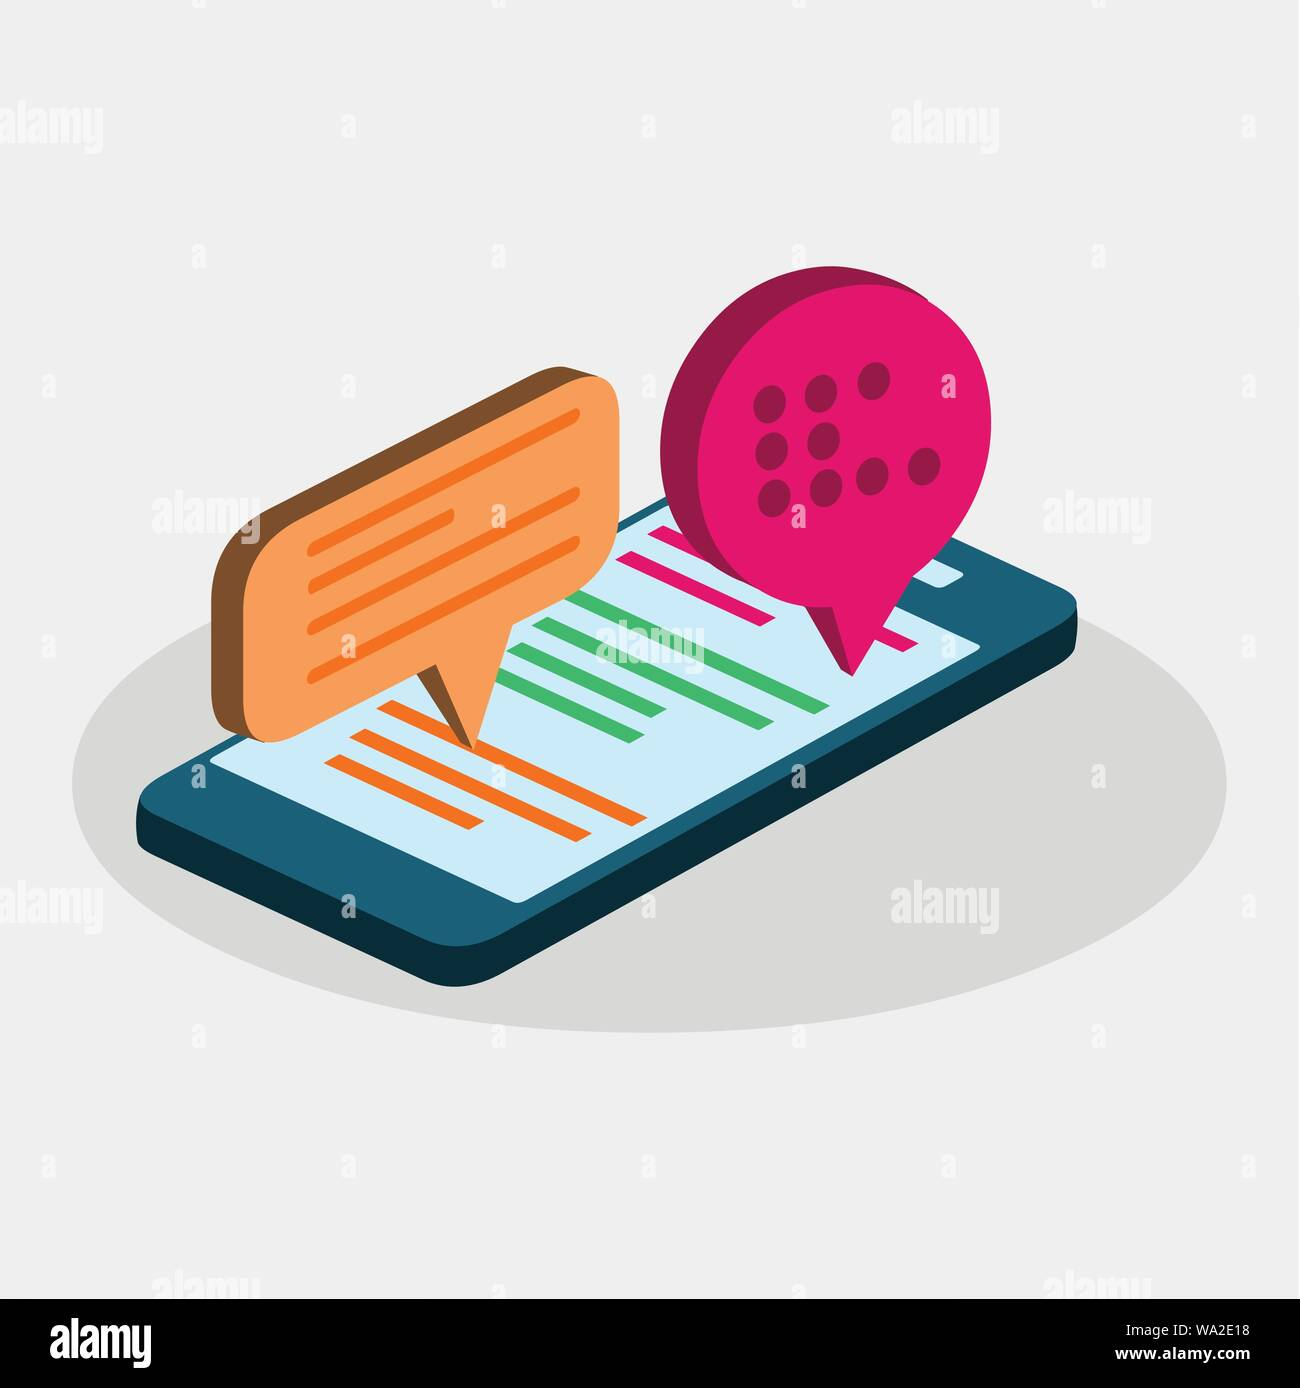 Isometrica chat mobile application concetto illustrazione vettoriale Illustrazione Vettoriale